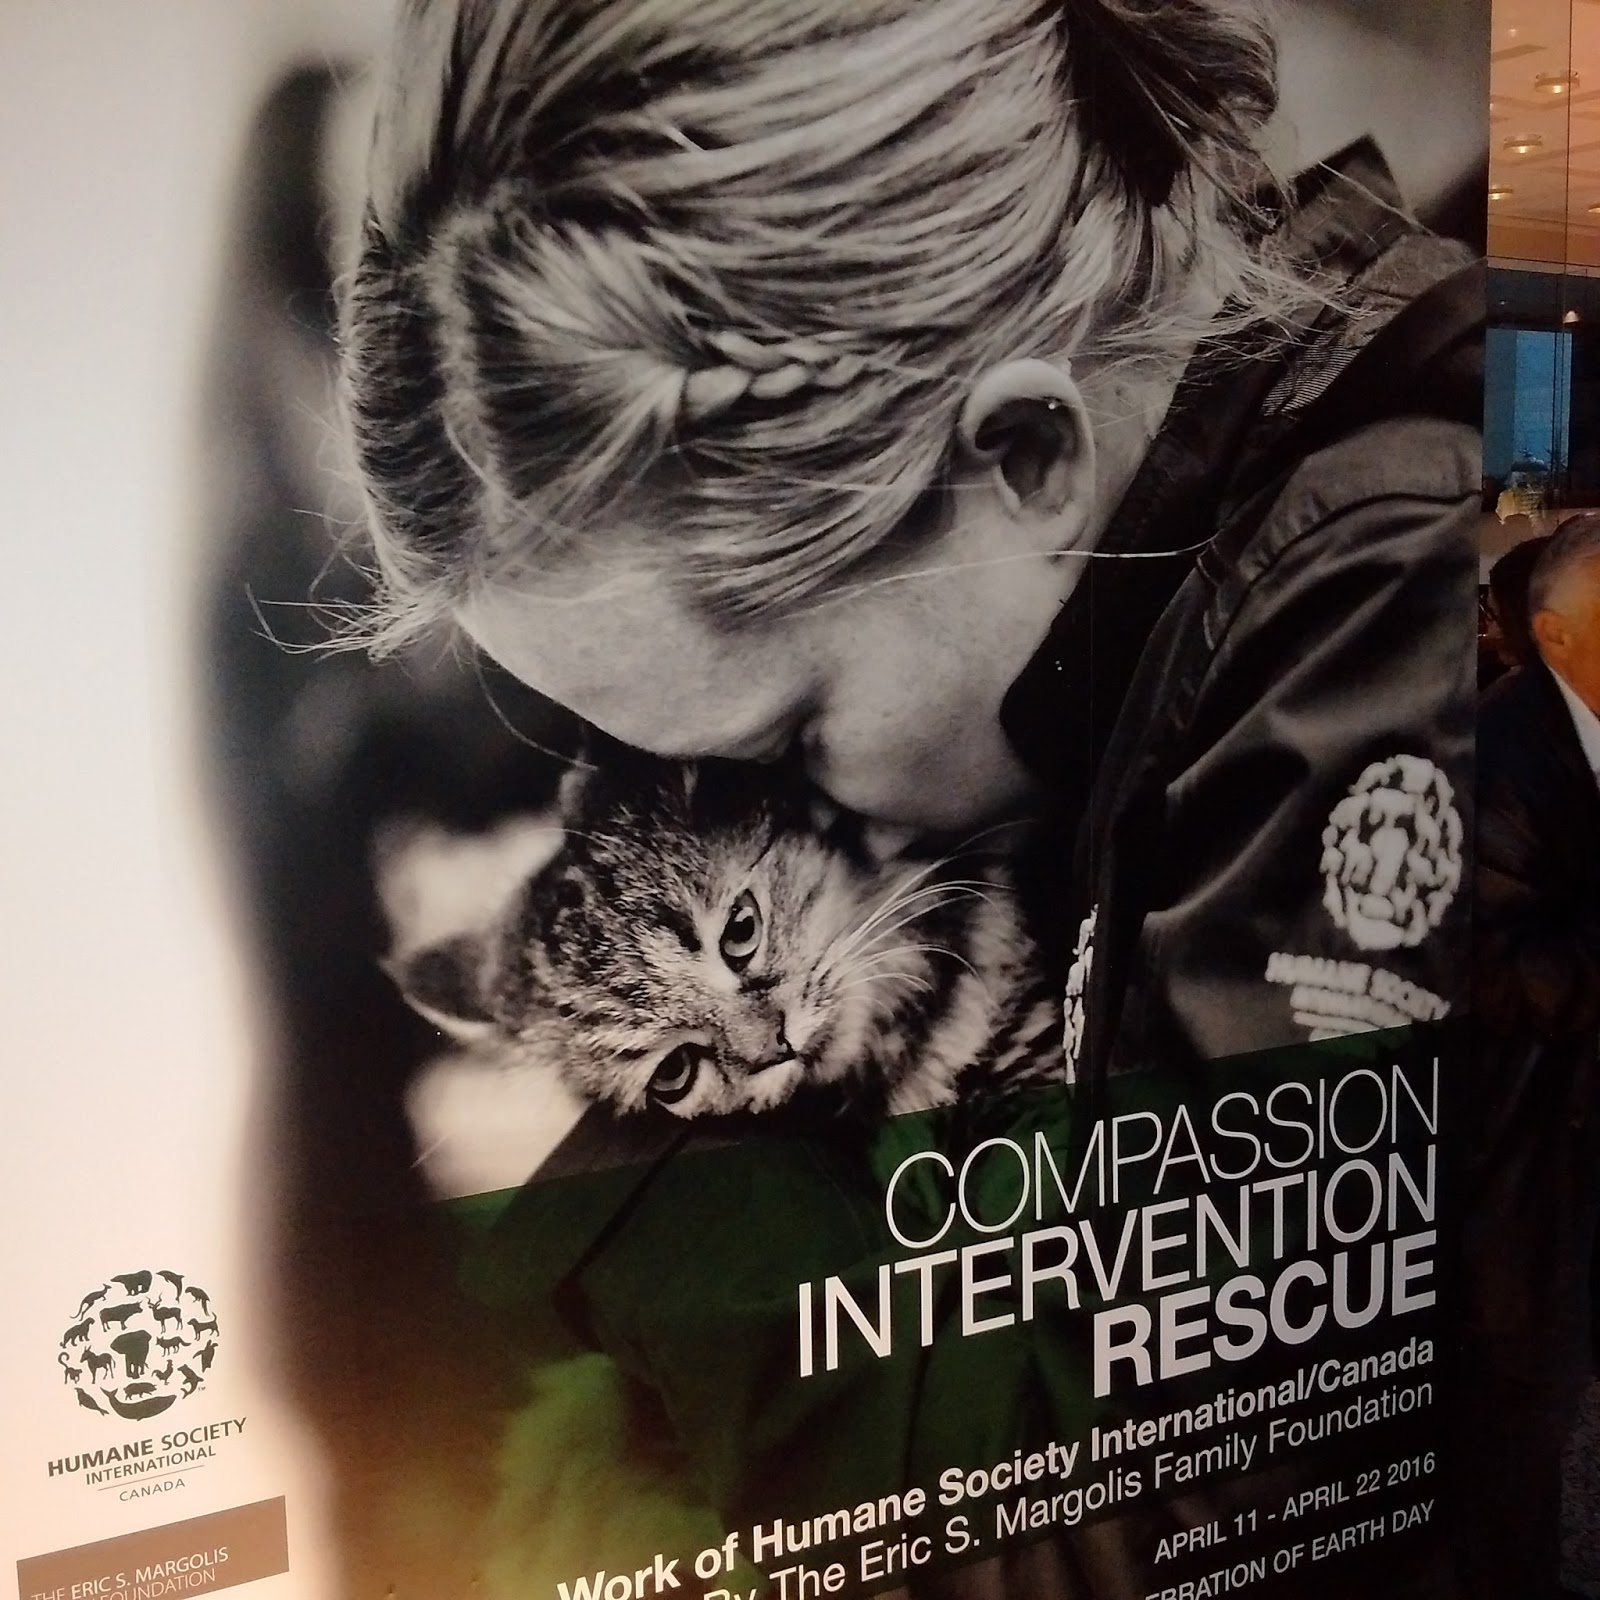 Heartwarming image of a rescued kitty, with rescuer, at the lobby art exhibit.